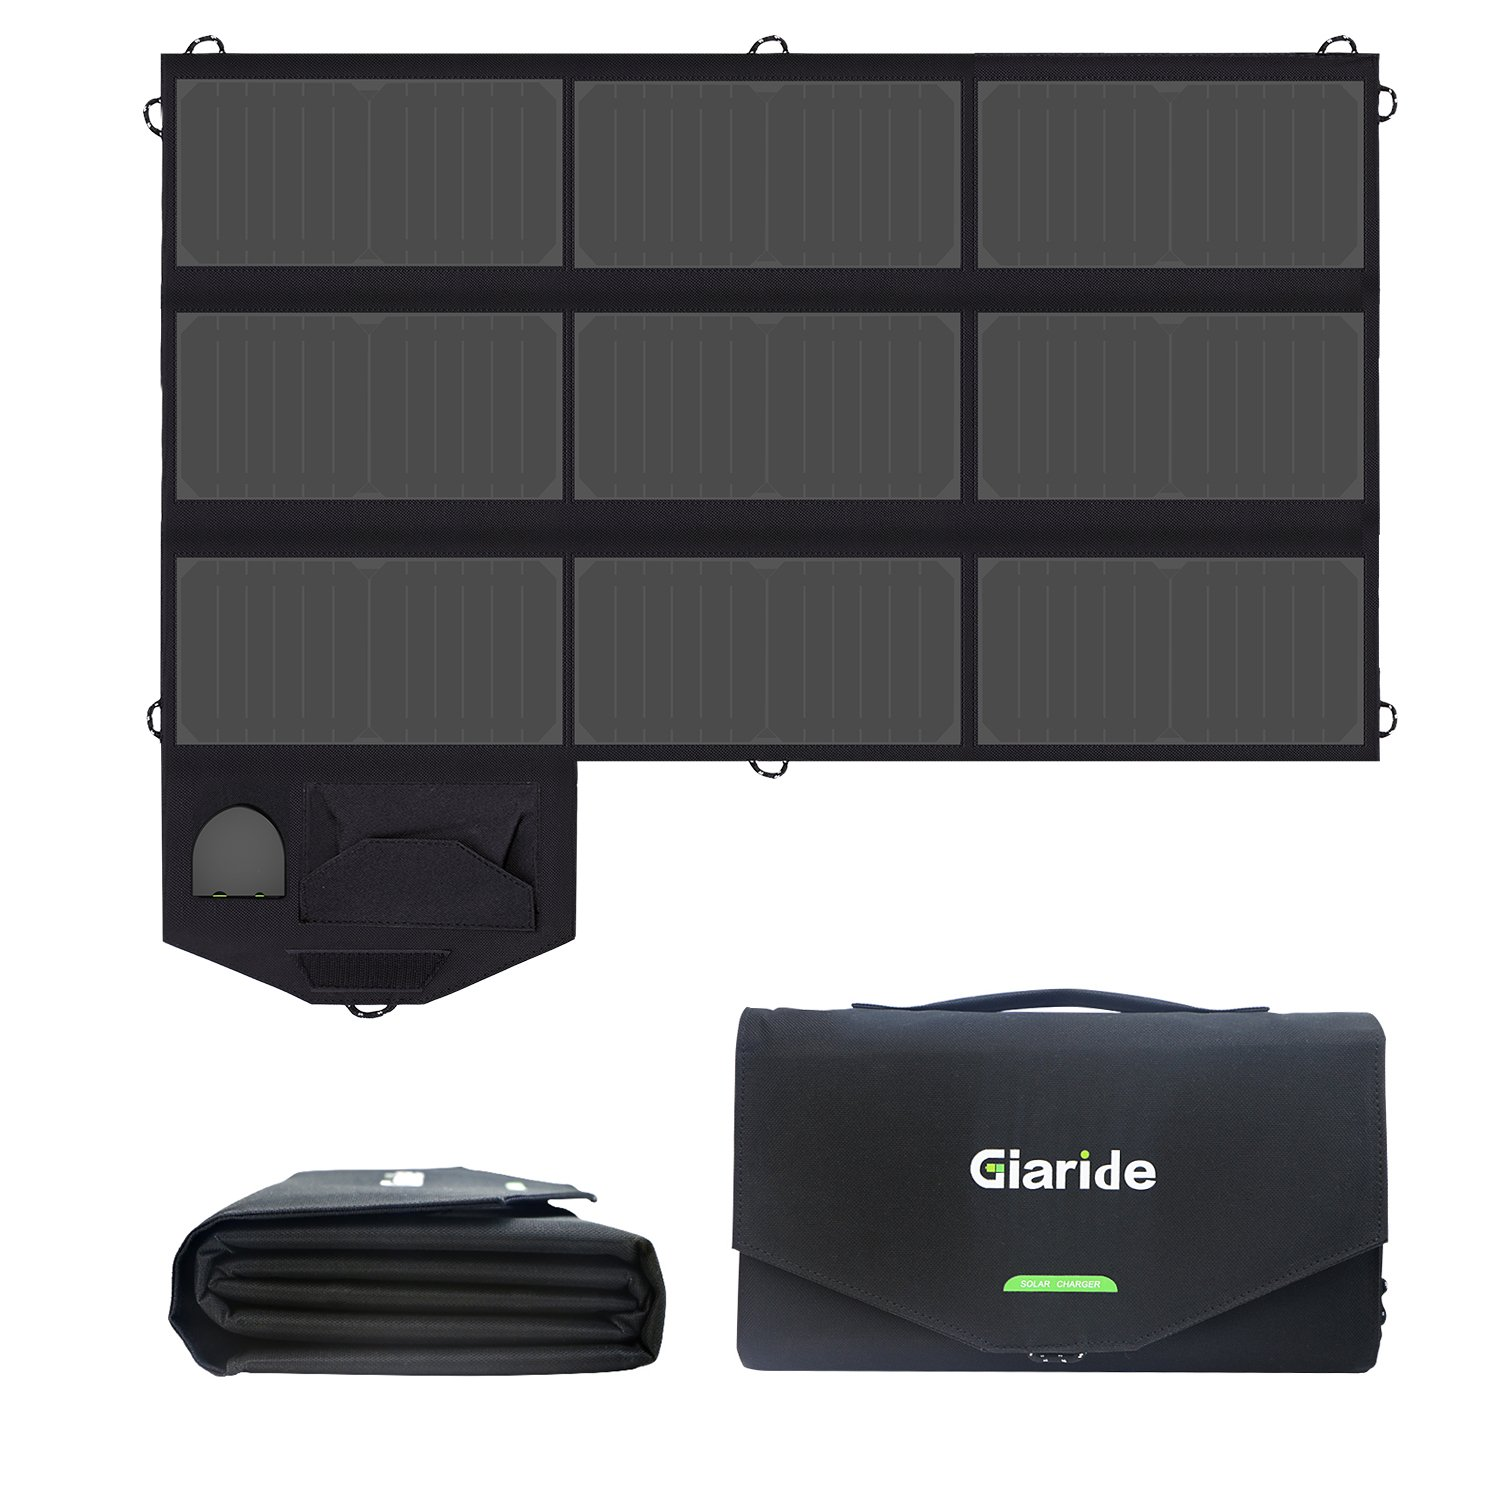 GIARIDE 18V 60W Foldable Sunpower Panel Solar Charger 5V USB/18V DC Output, Portable Pack for Laptop, Notebook, Tablet, iPad, iPhone, Samsung, Car/Boat/RV Battery, Hiking, Climbing, Camping and More